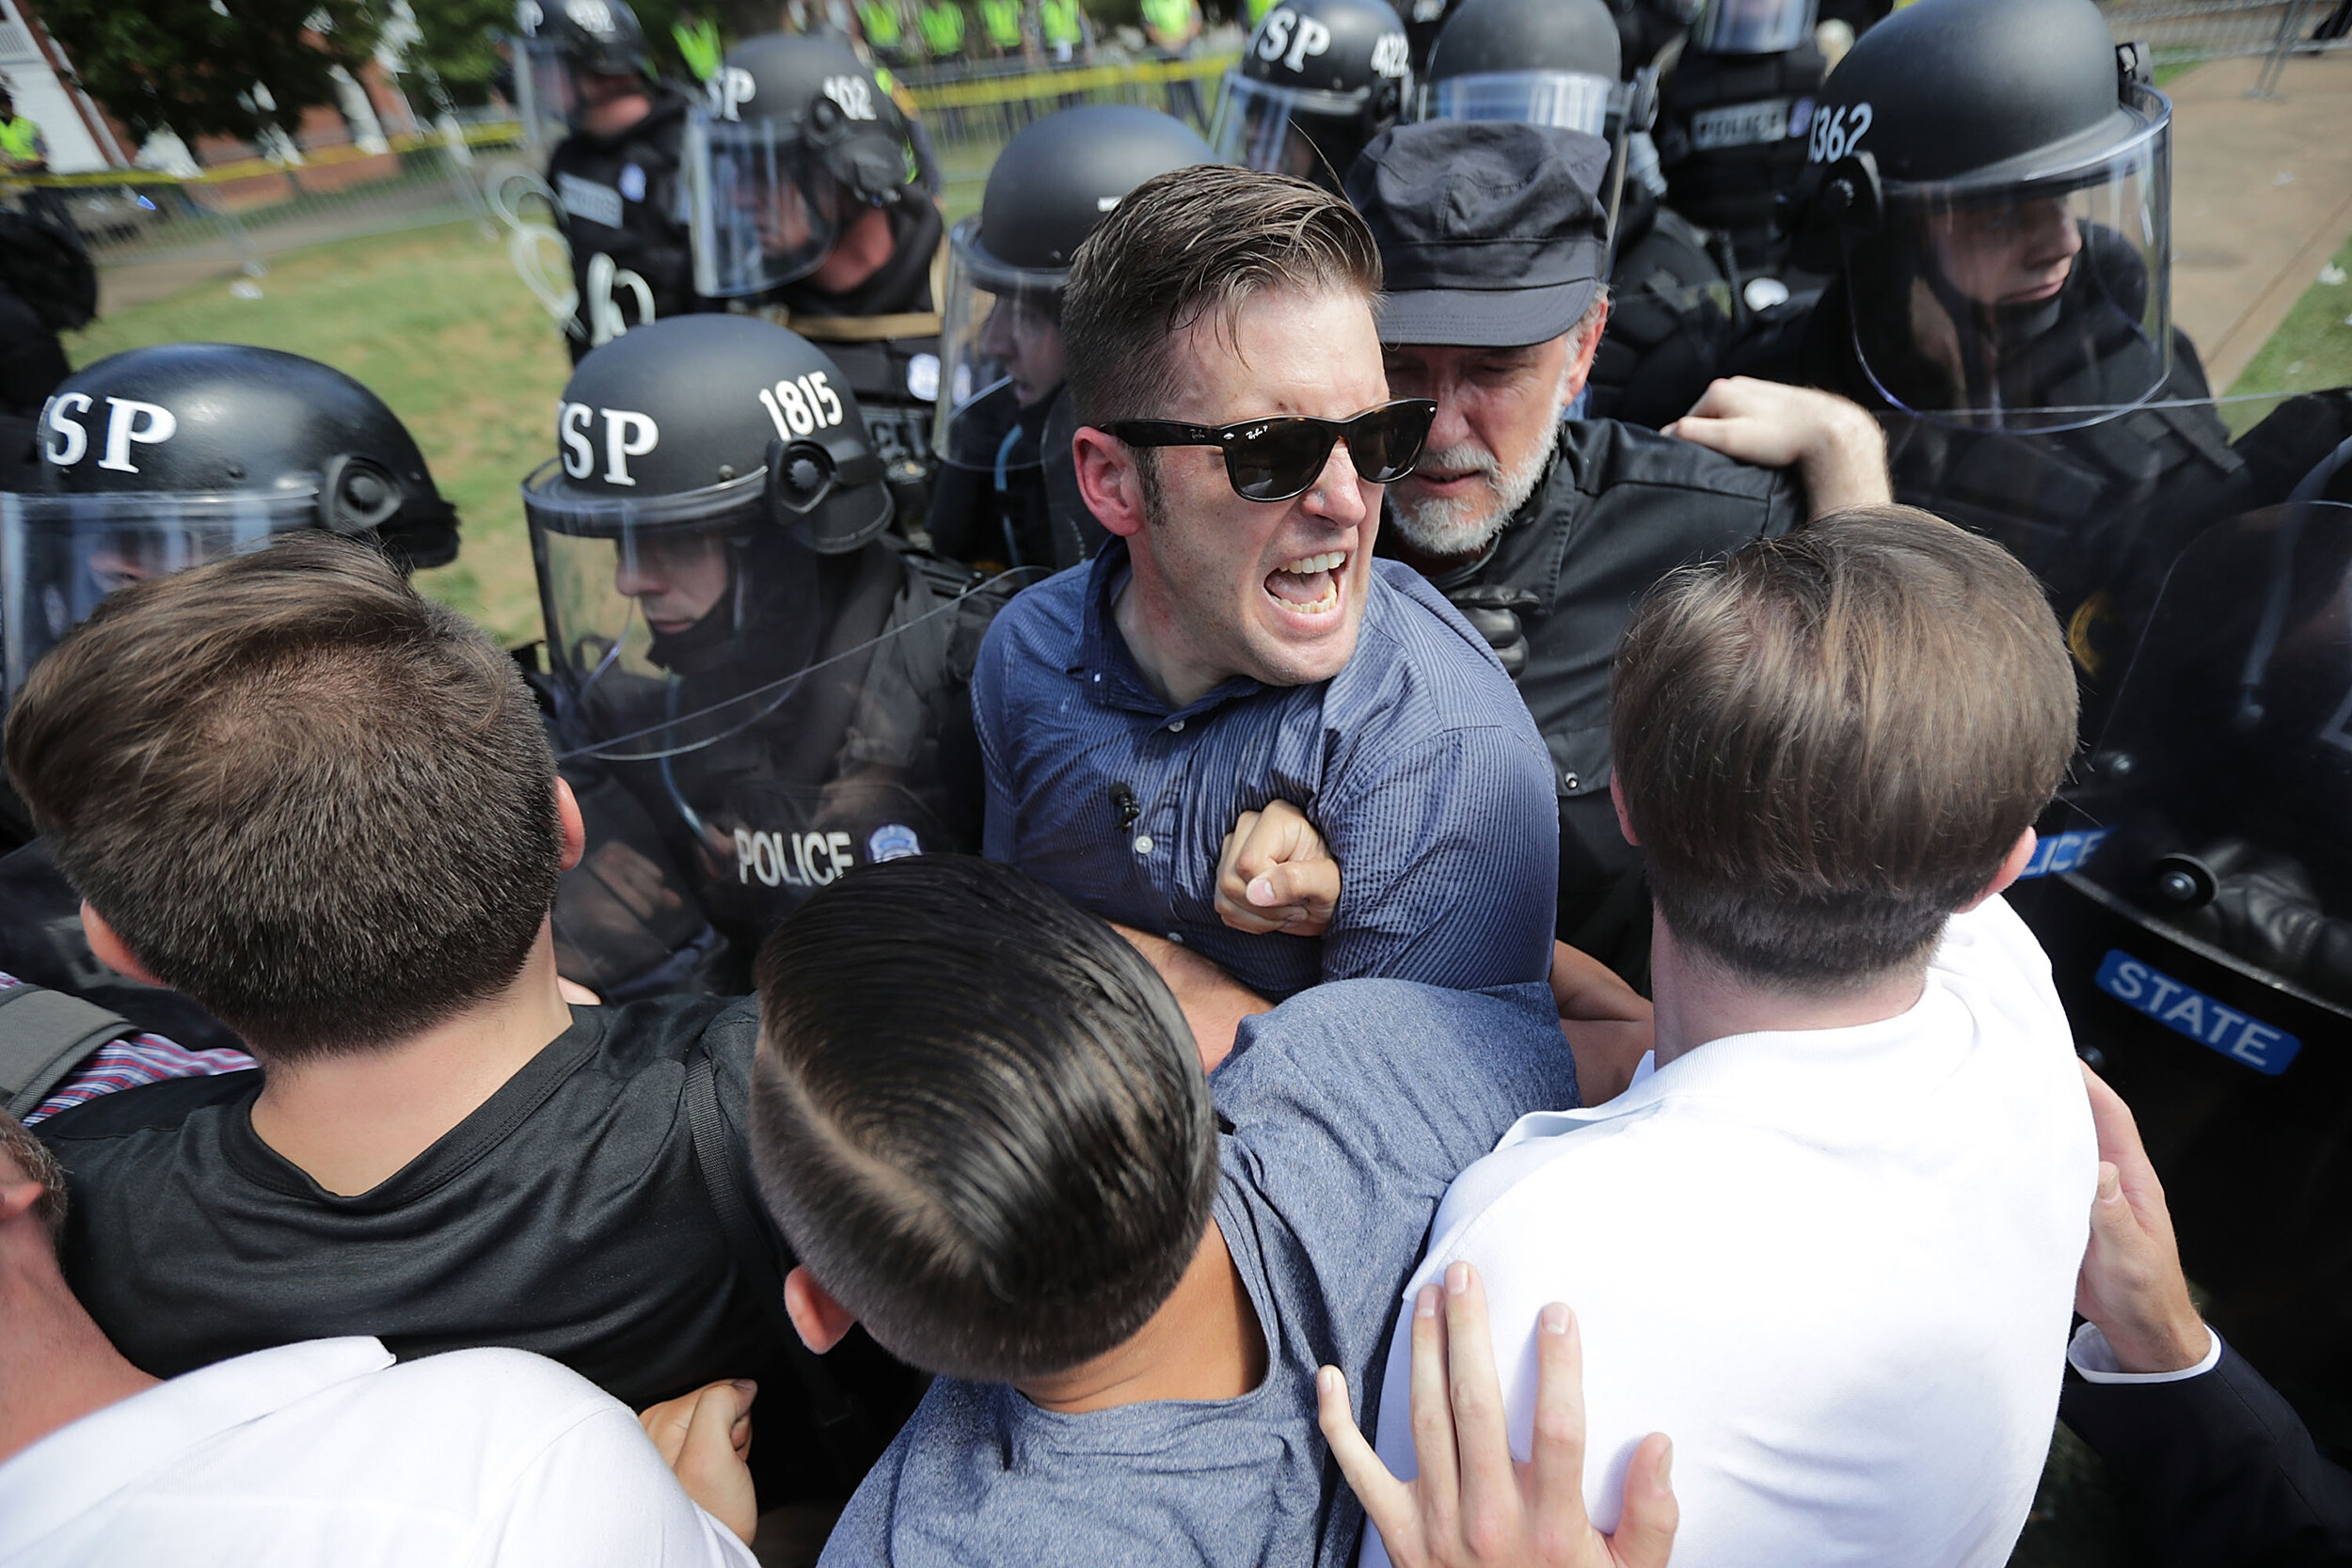 Jury has been selected in the civil trial against the organizers of the 'Unite the Right' rally in Charlottesville